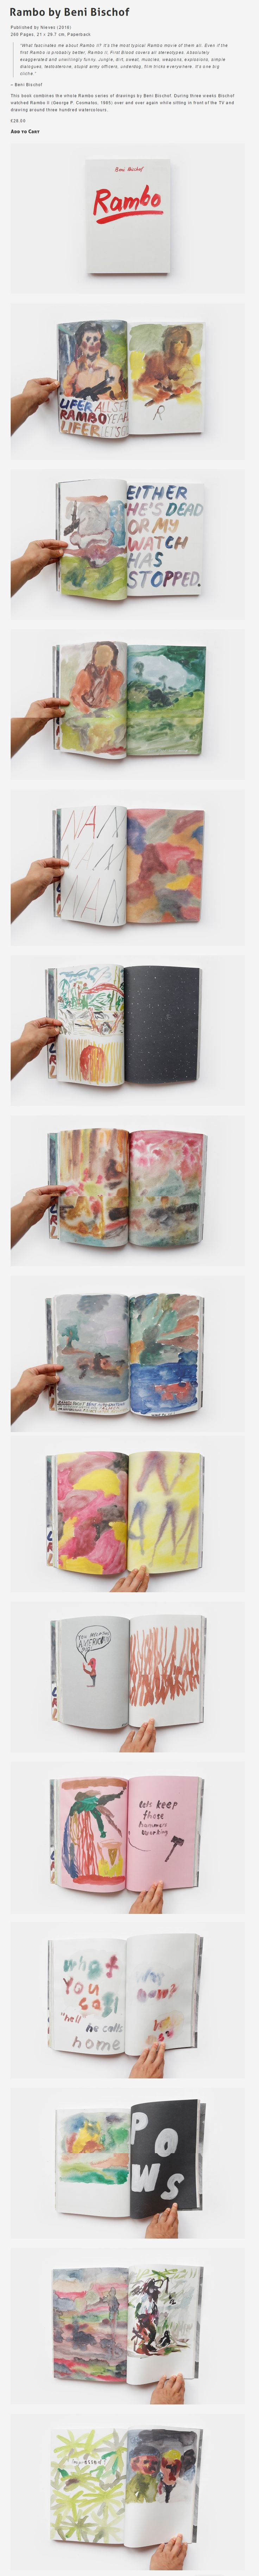 This book combines the whole Rambo series of drawings by Beni Bischof. During three weeks Bischof watched Rambo II (George P. Cosmatos, 1985) over and over again while sitting in front of the TV and drawing around three hundred watercolours.